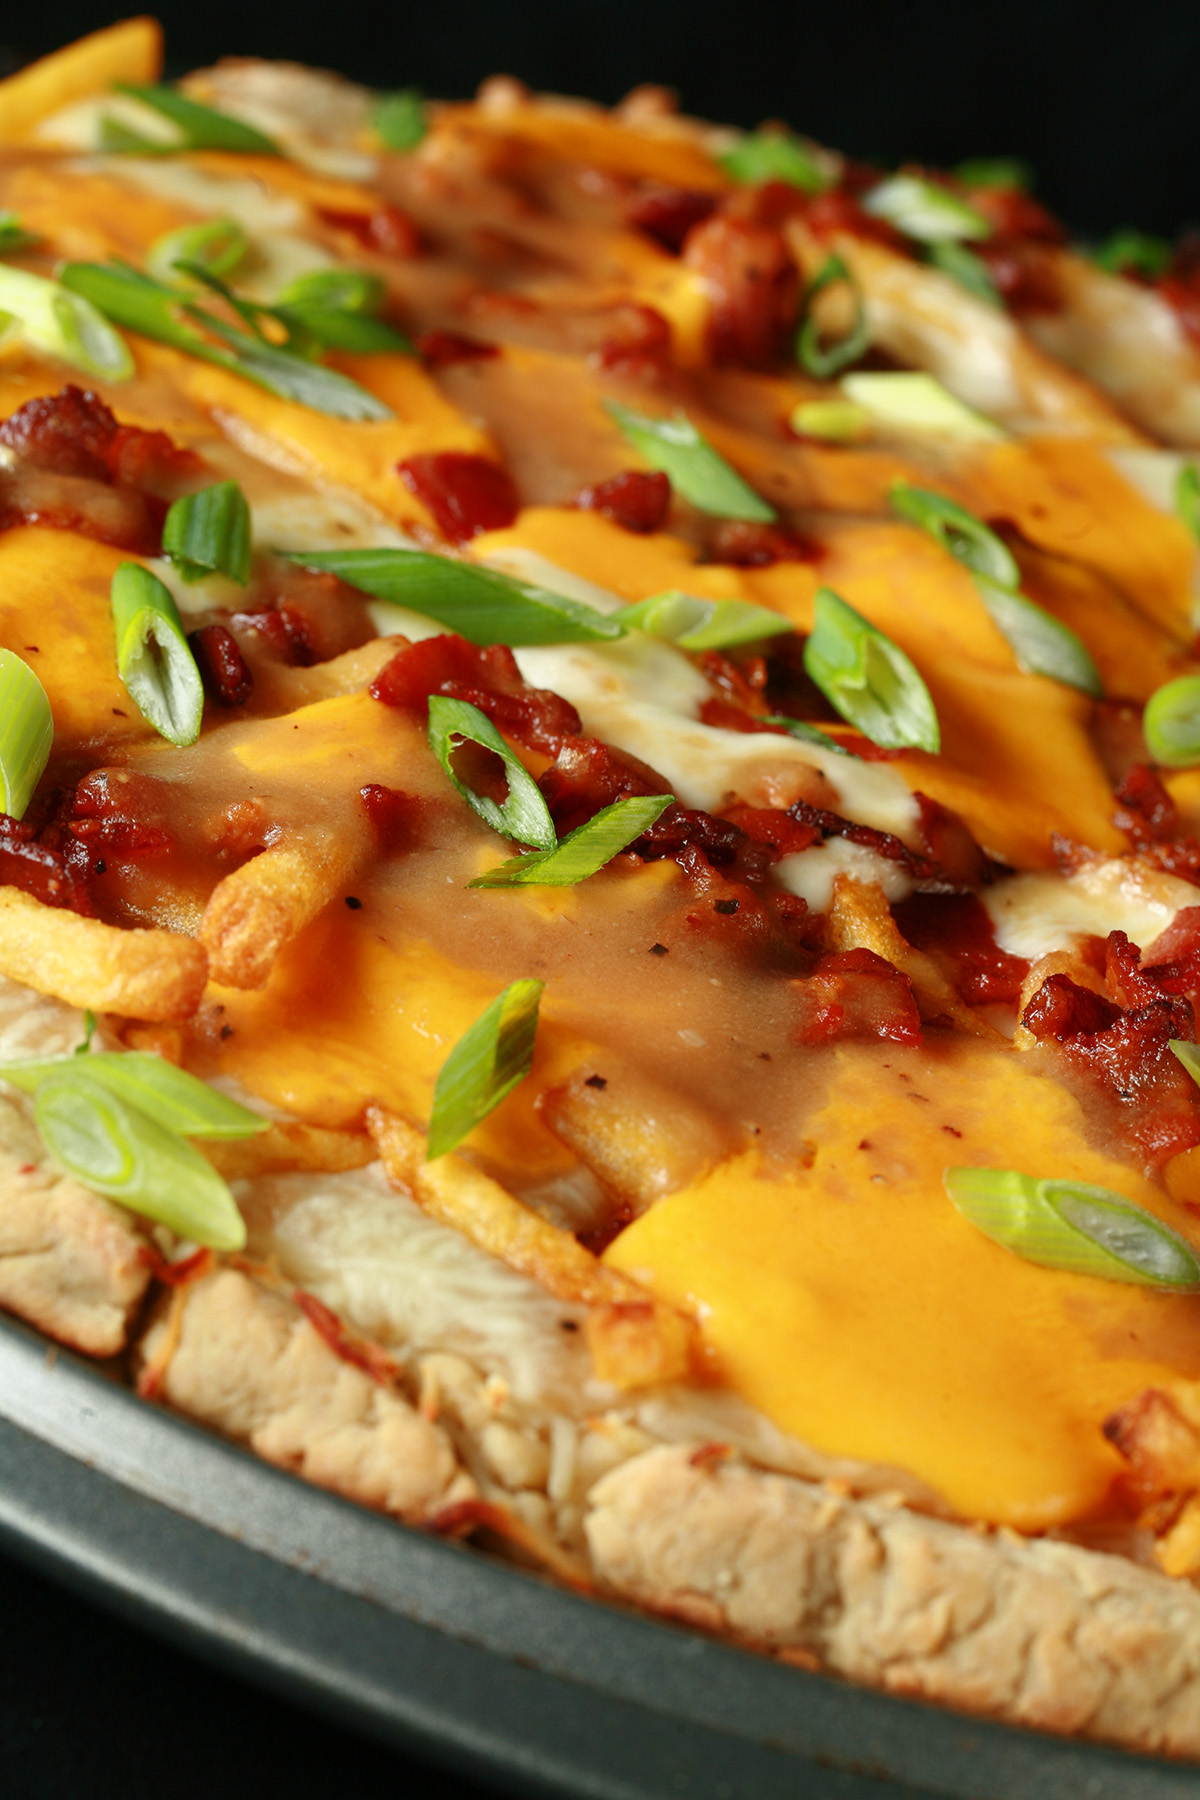 A close up view of a gluten-free bacon poutine pizza - A pizza crust topped with gravy, fries, cheese curds, chredded cheese, bacon, and green onions!